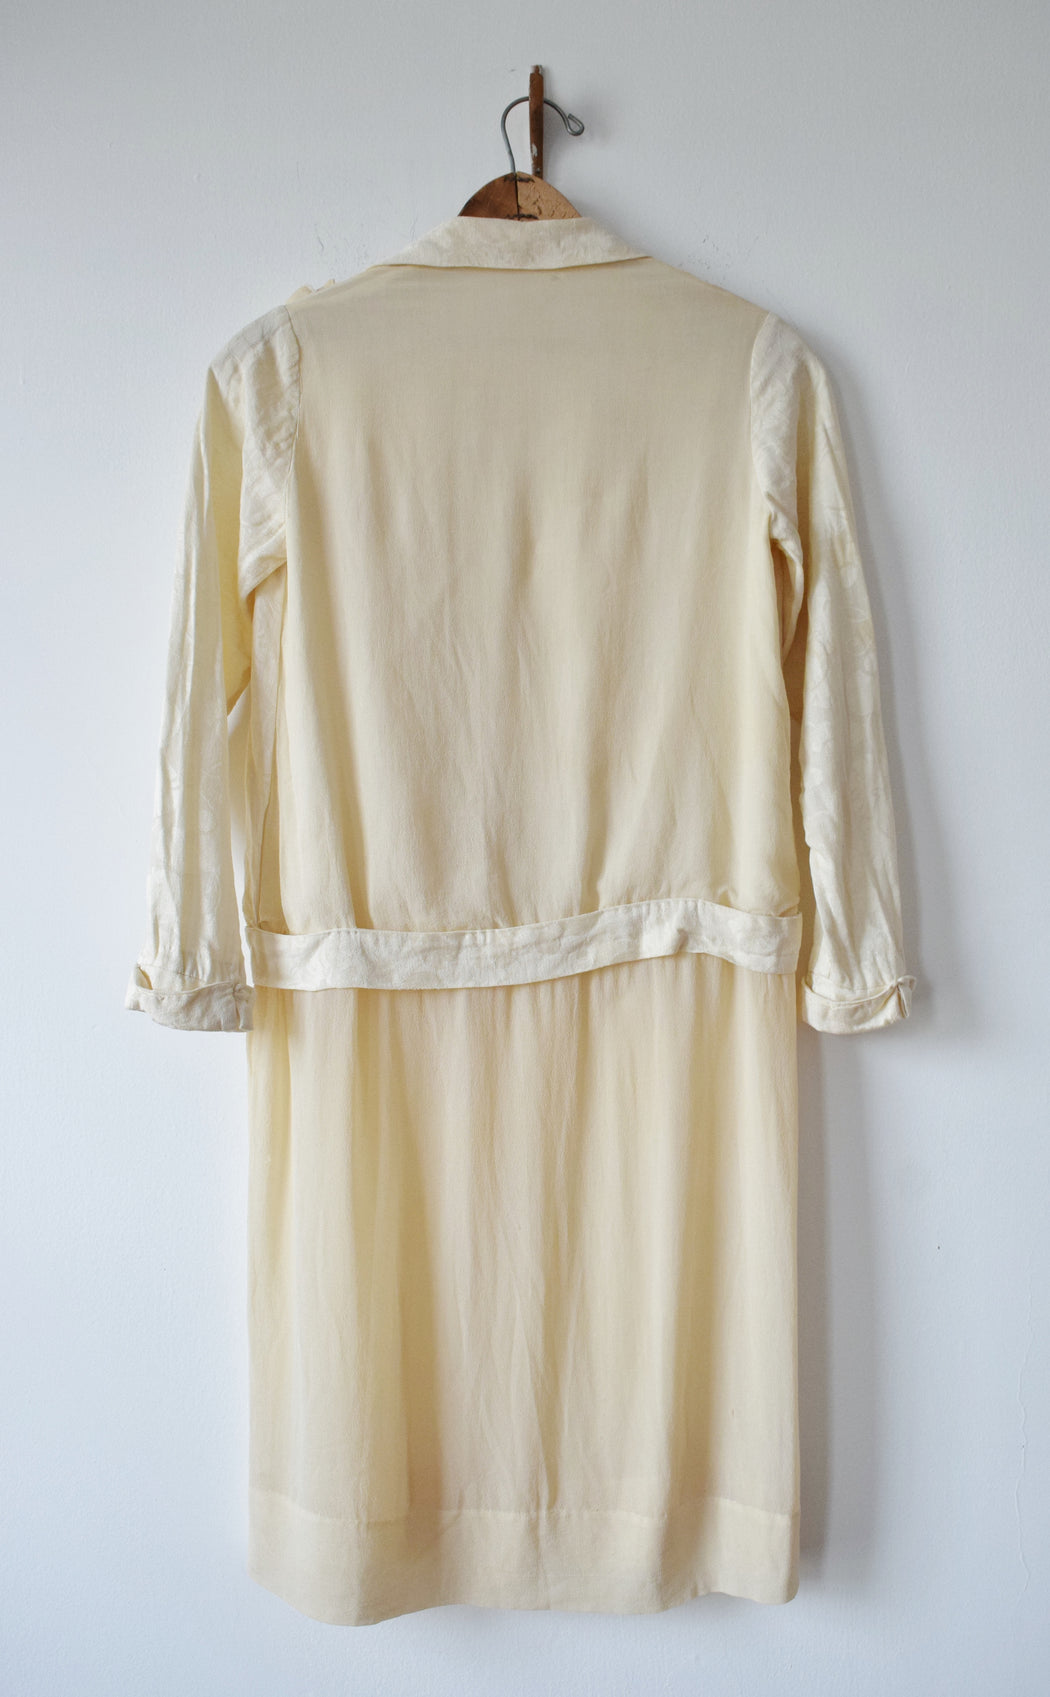 1920s Adolescent's (or V. Petite Adult) Mixed Silks Dress